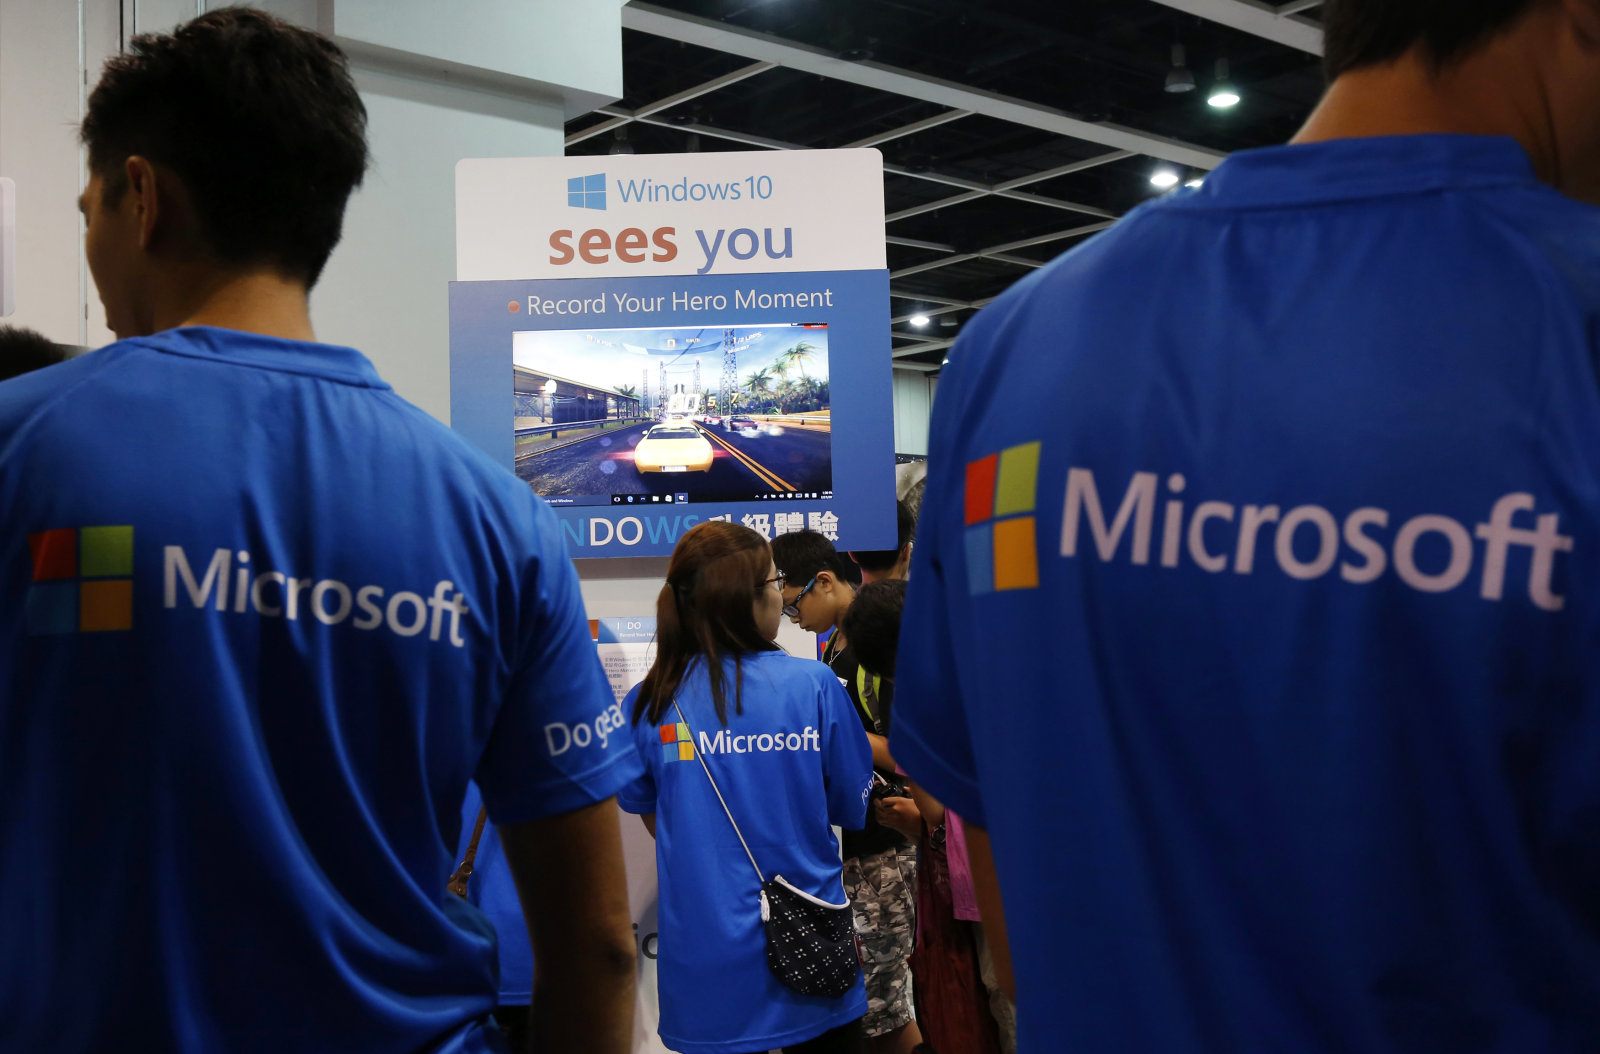 Promotional staff stand at the Microsoft Windows 10 booth two days before its global official launch at the Ani-Com & Games Hong Kong in Hong Kong, China, July 27, 2015. REUTERS/Bobby Yip